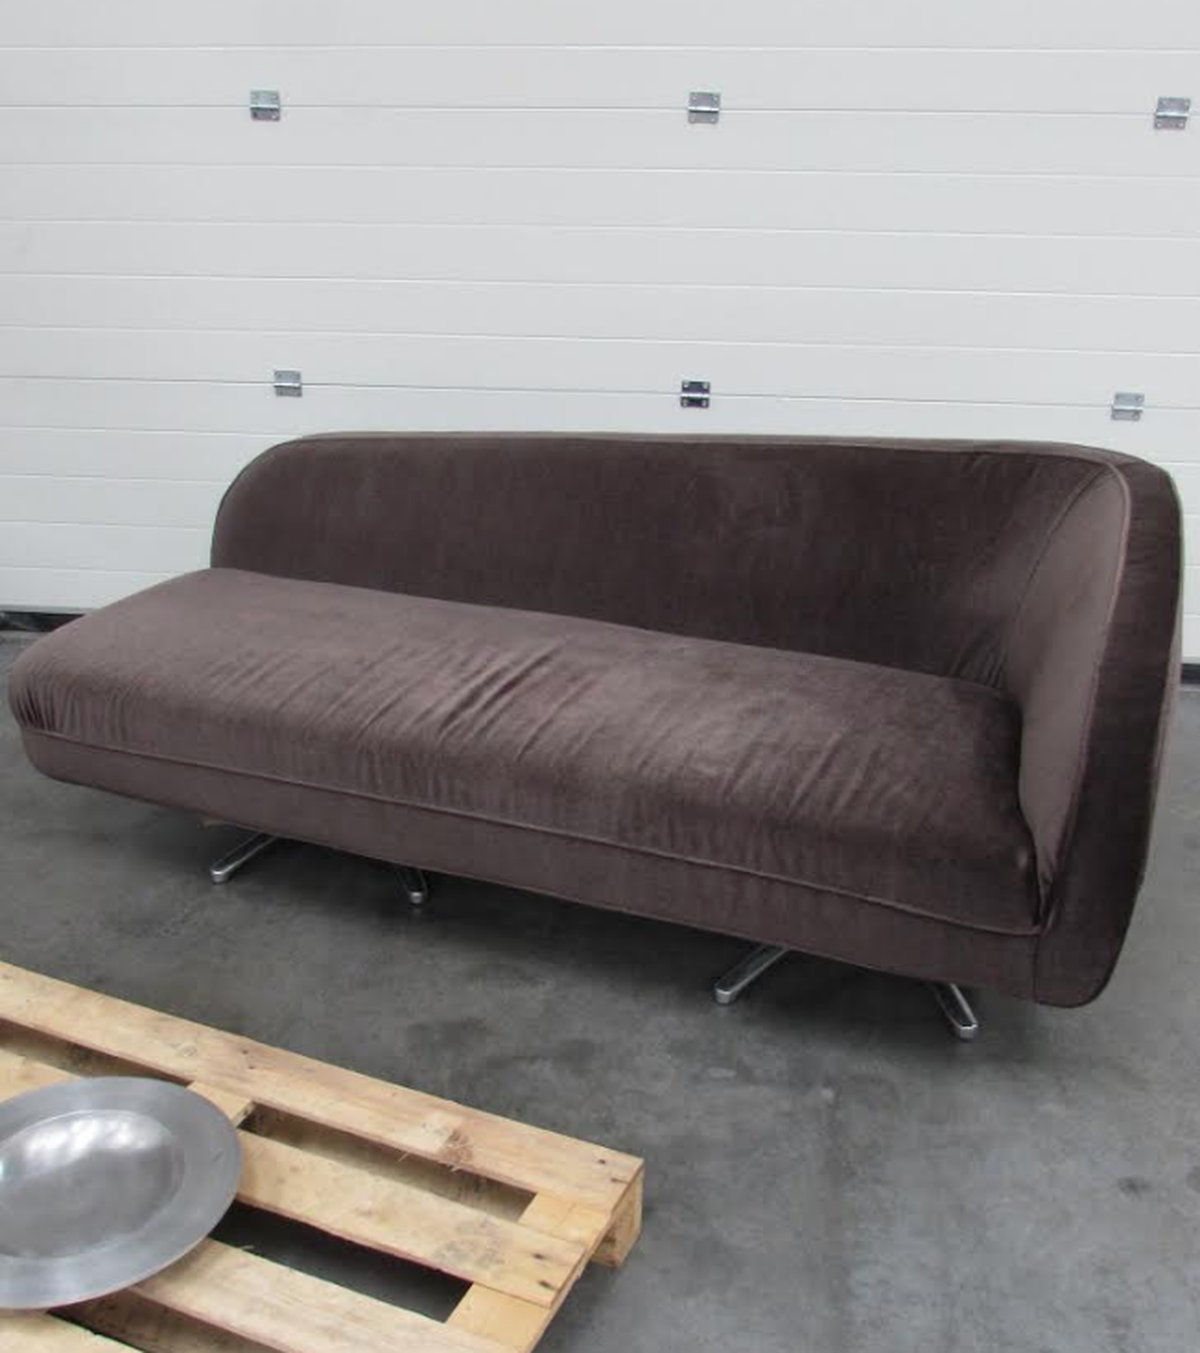 Secondhand pub equipment home furniture industrial for Chaise longue for sale uk